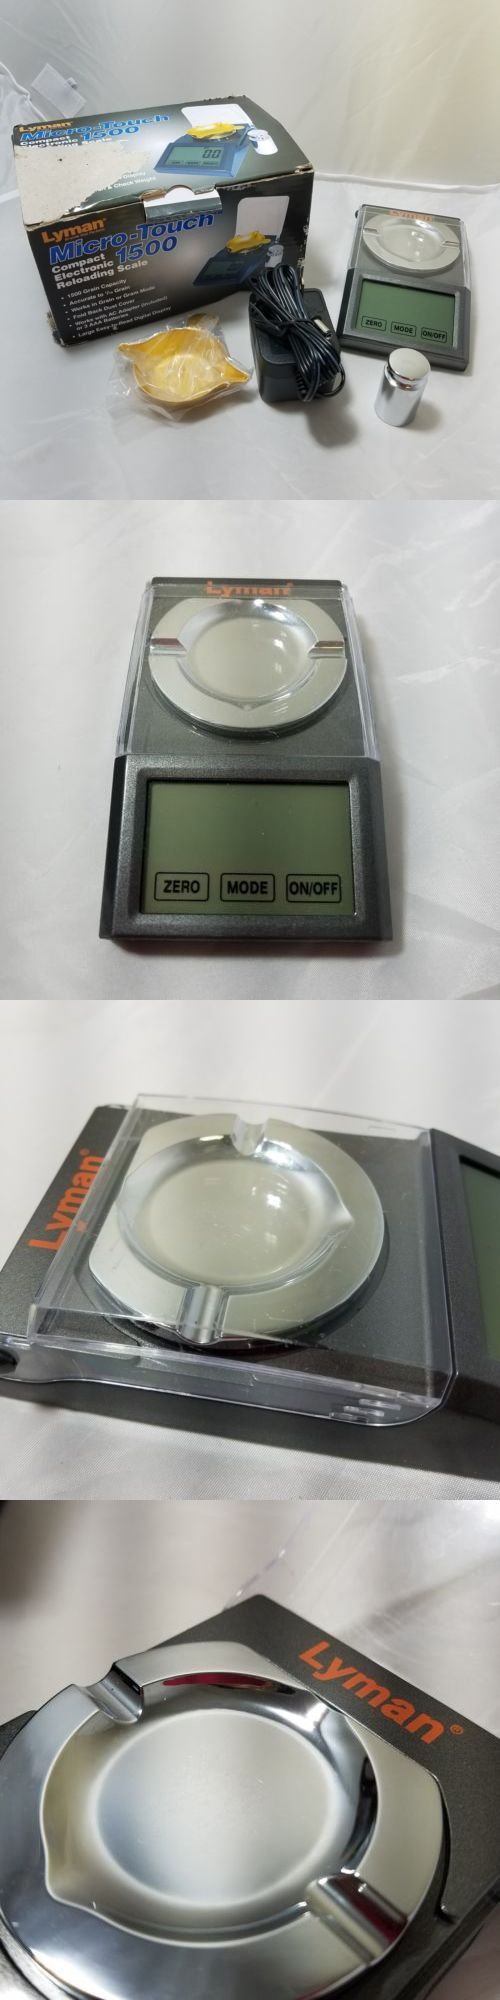 Powder Measures Scales 71119: Lyman Micro-Touch 1500 Electronic Reloading Scale -> BUY IT NOW ONLY: $45.9 on eBay!